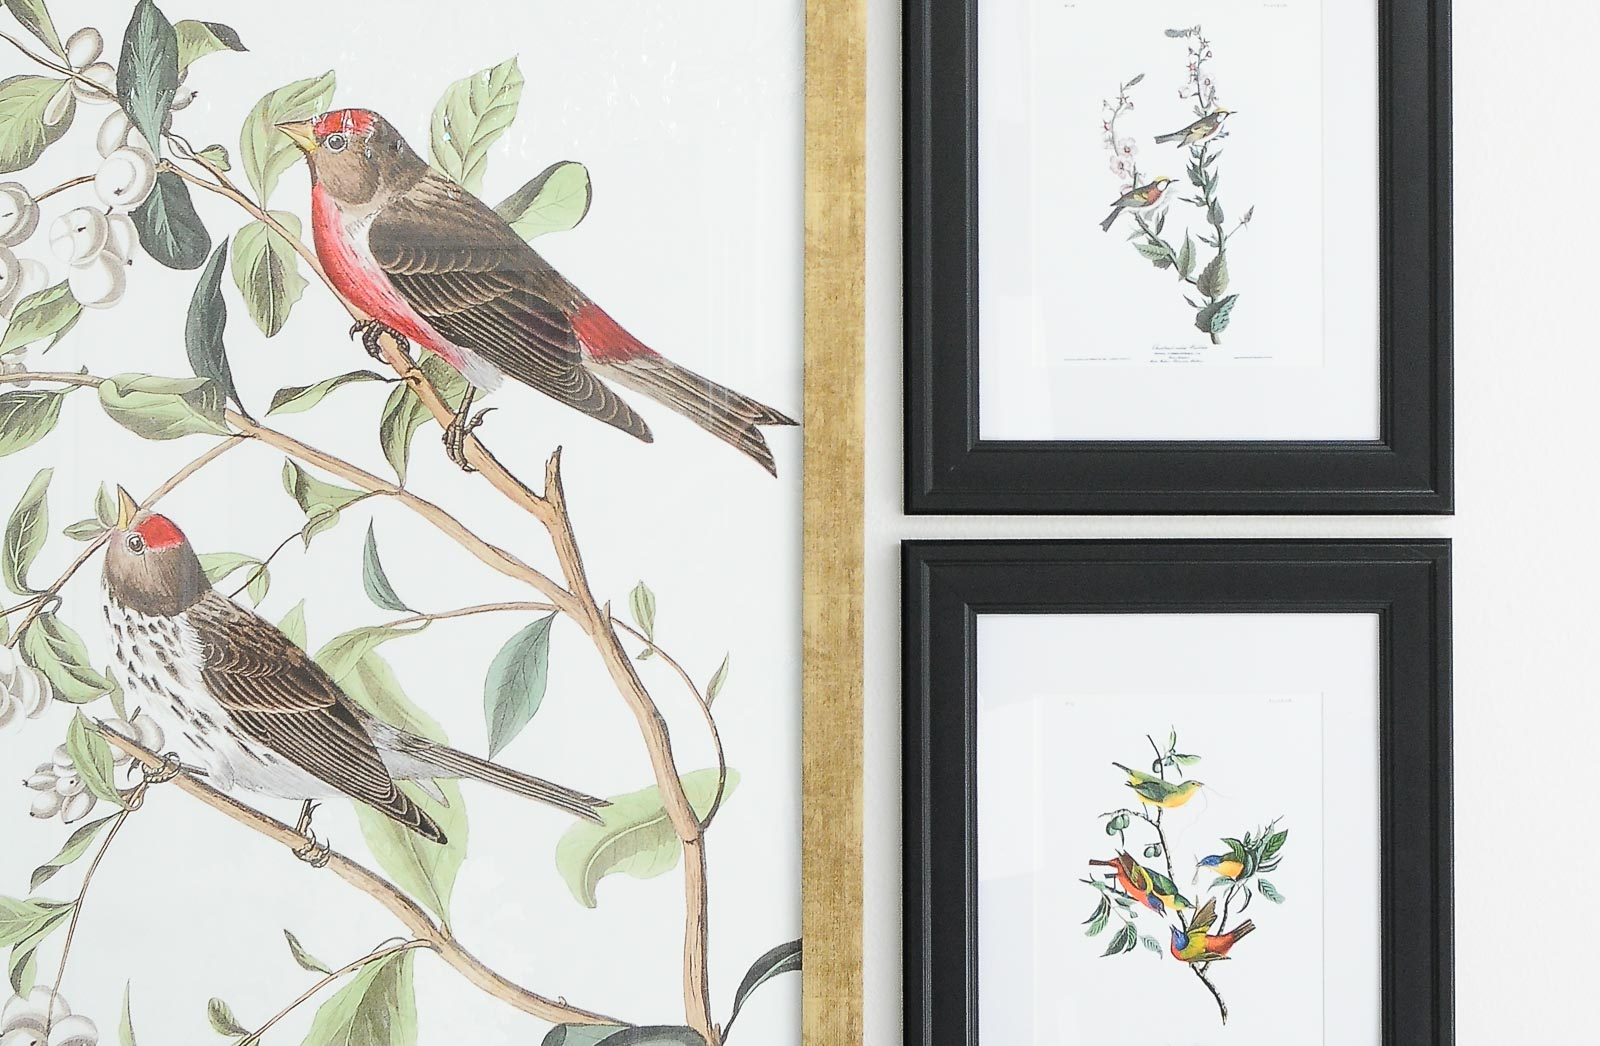 Botanical and audubon bird gallery wall ideas for a dining space.